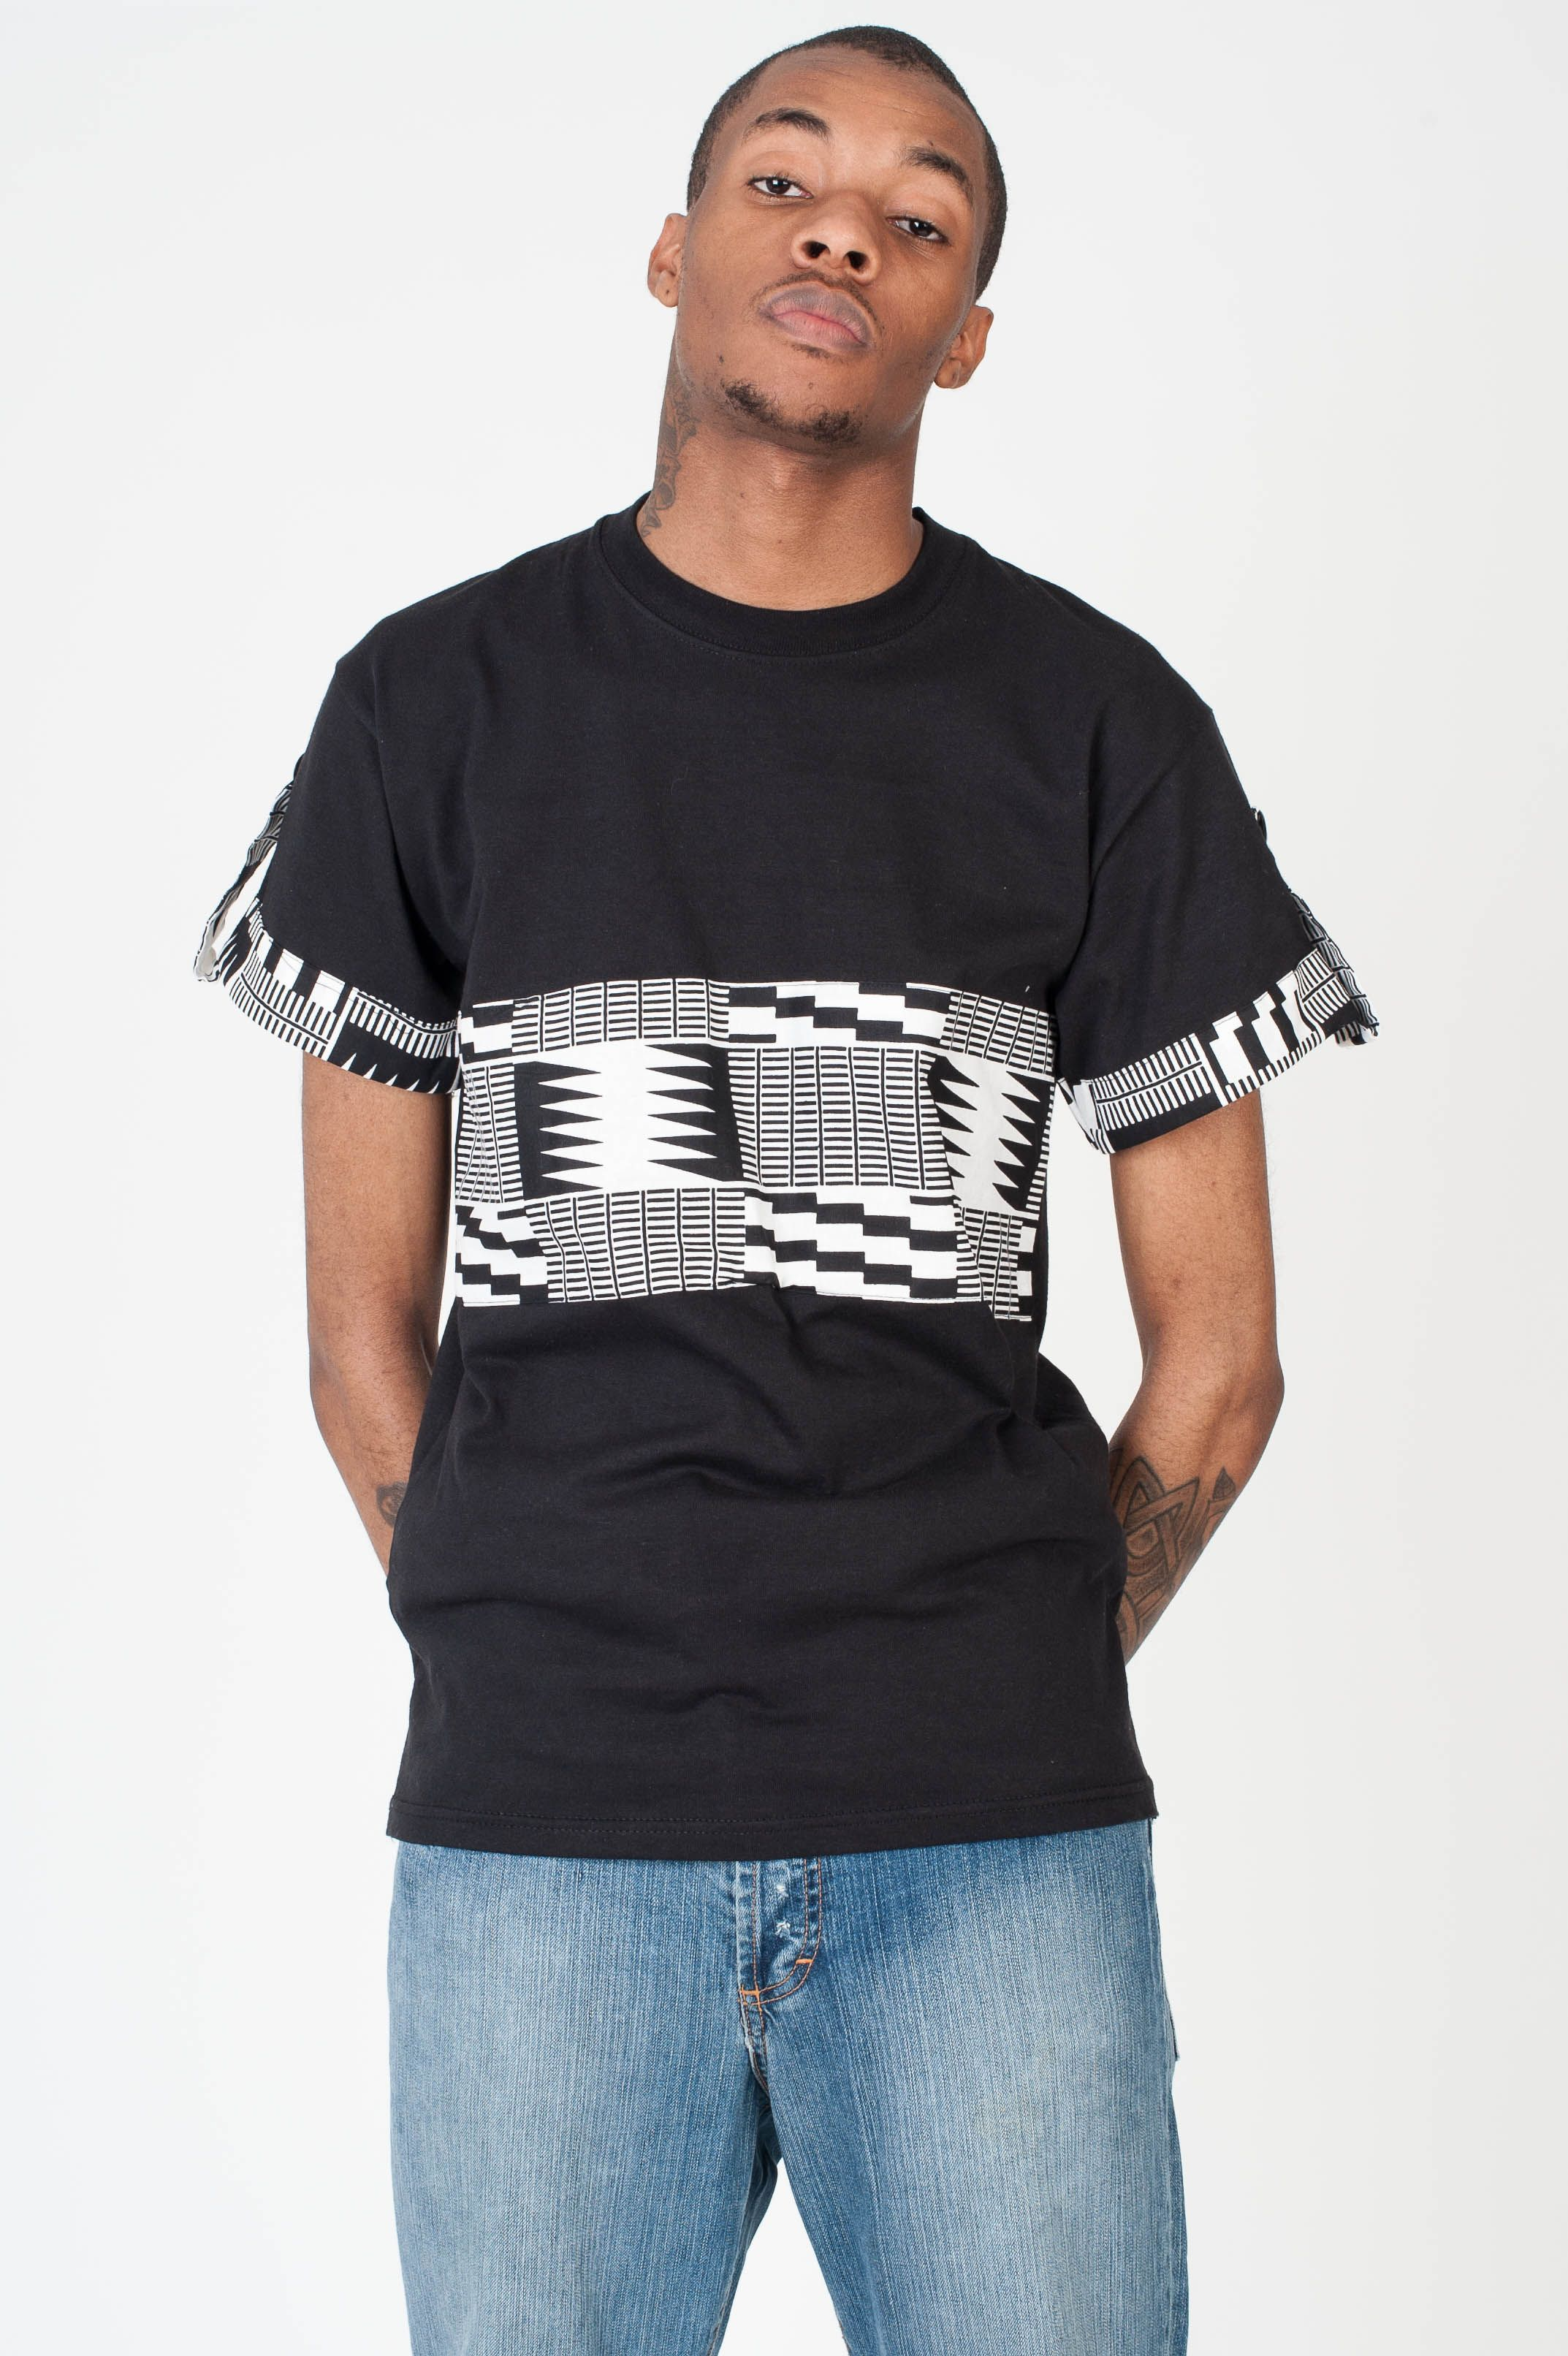 Black t shirt goes with - Black T Shirt For Men Keep It Minimalist With This African Print Monochrome Look